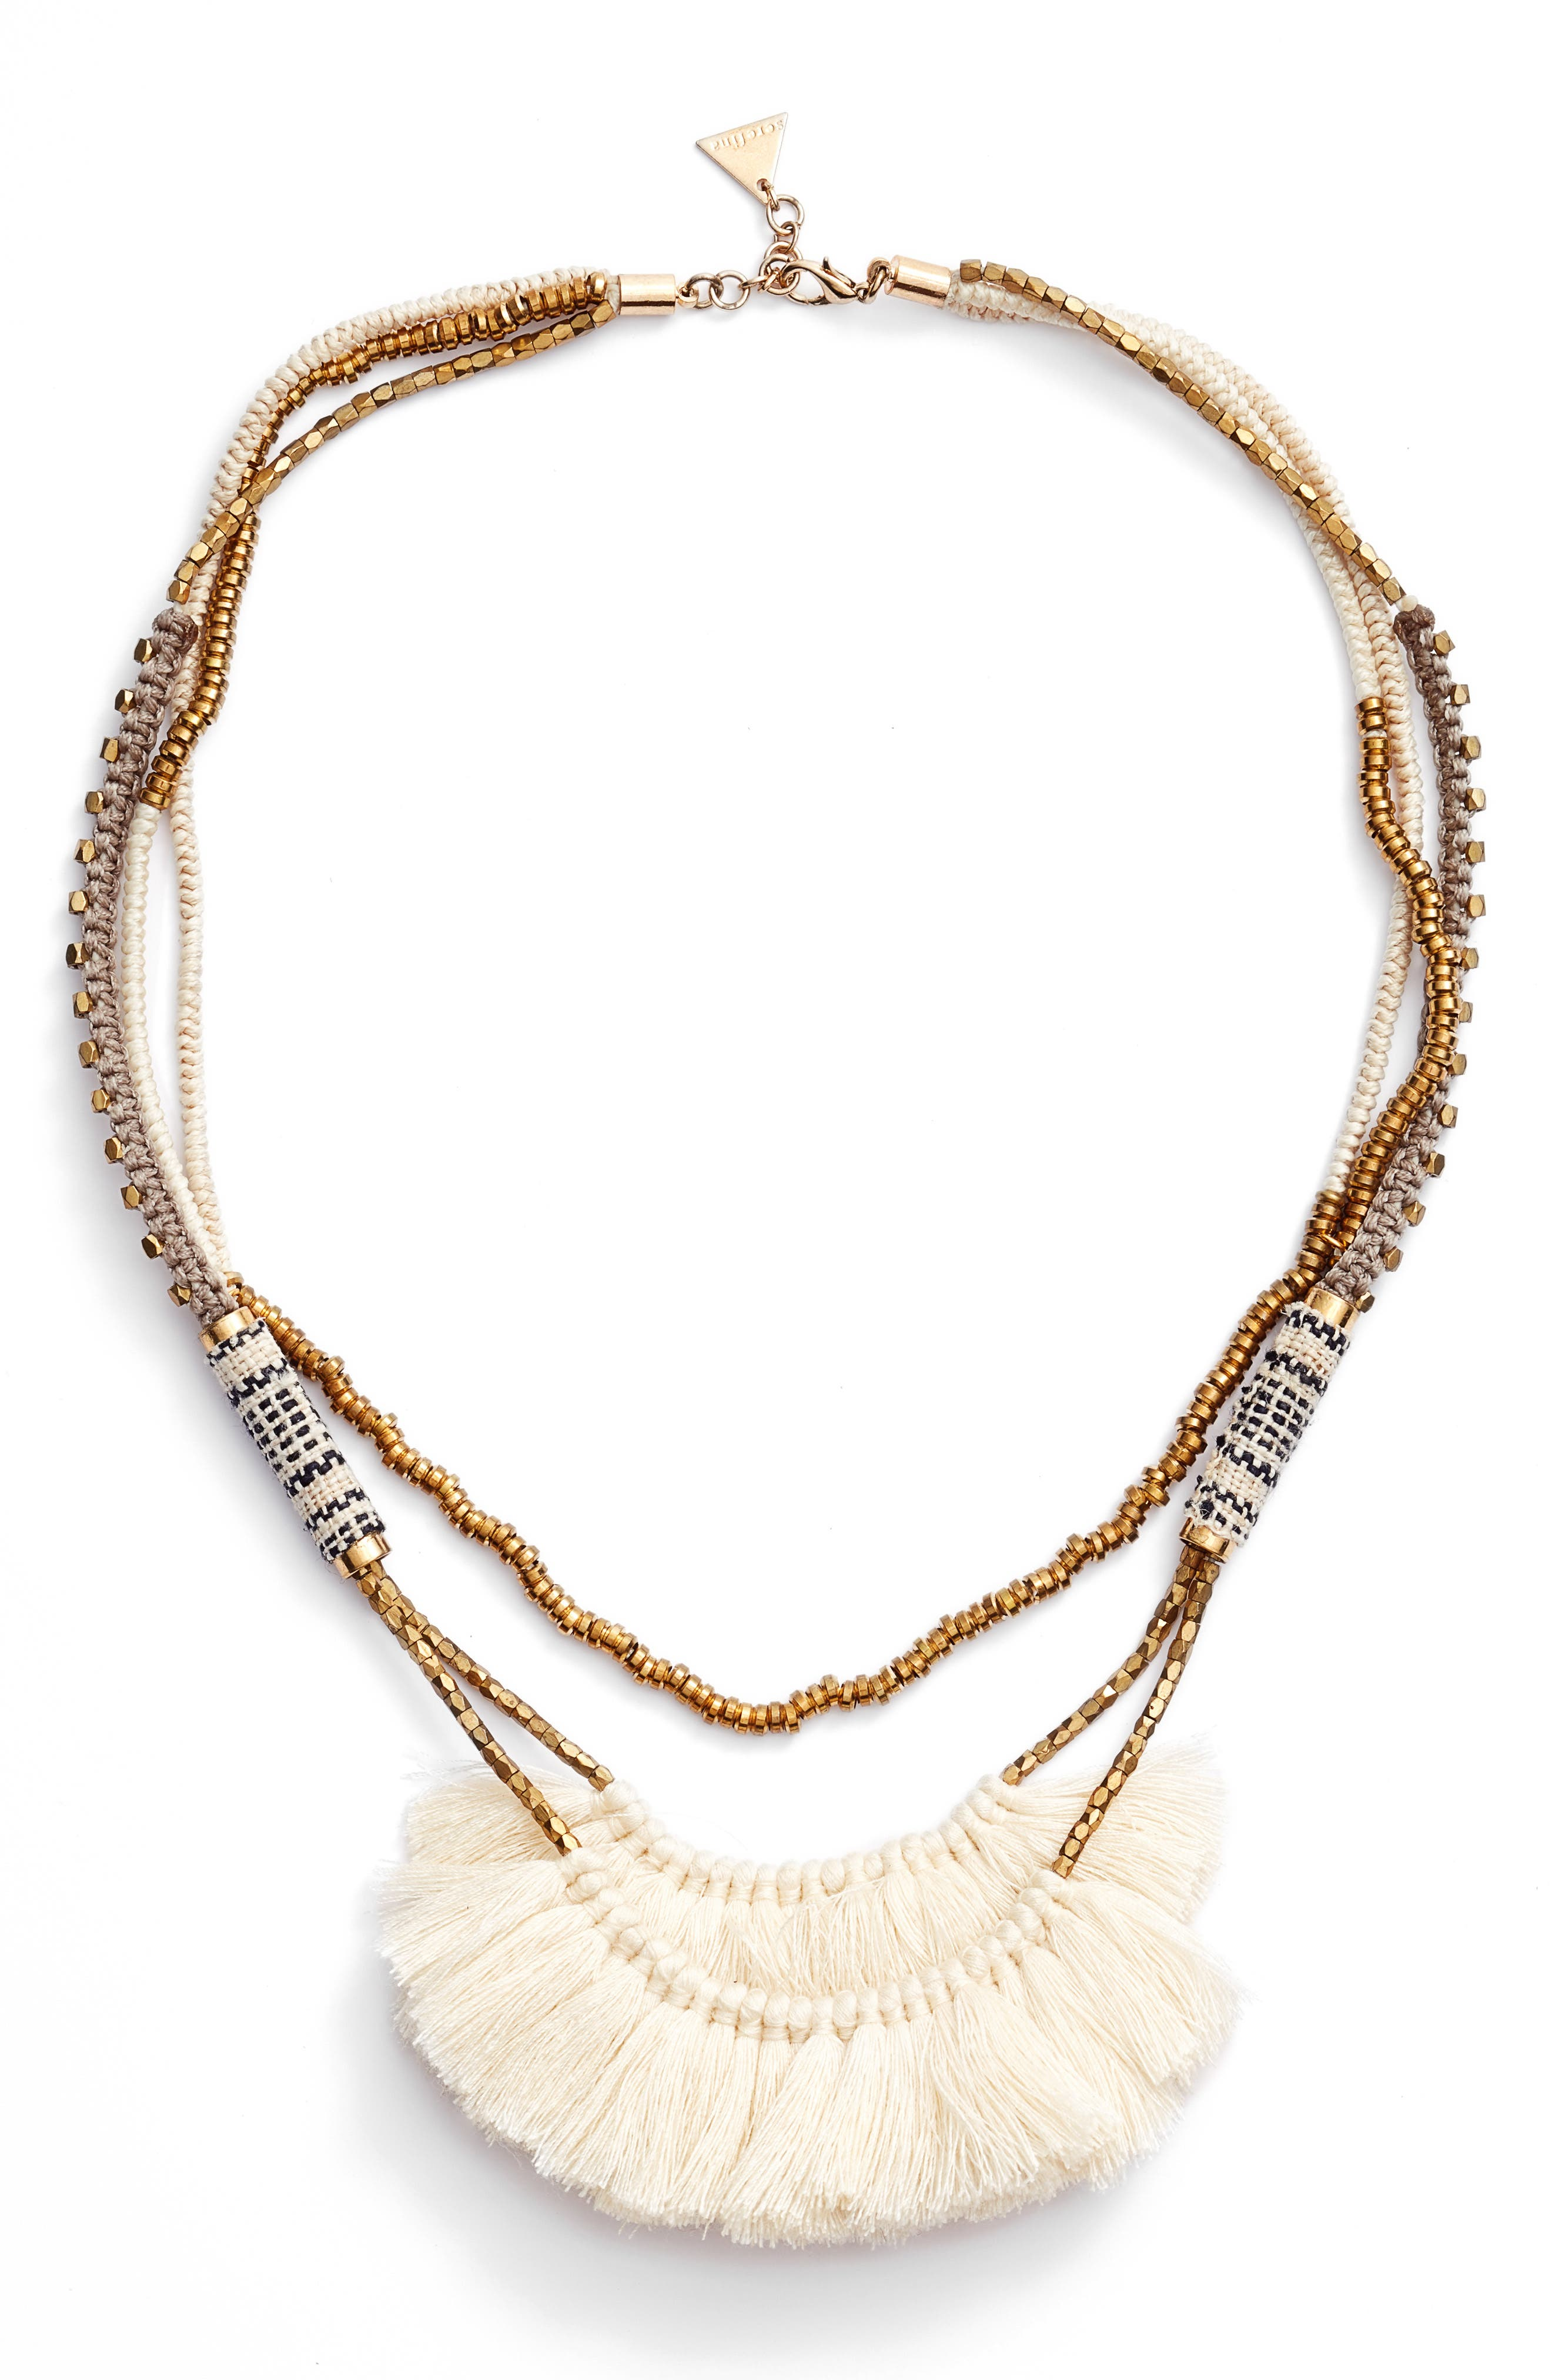 Tassel Statement Necklace,                         Main,                         color, White